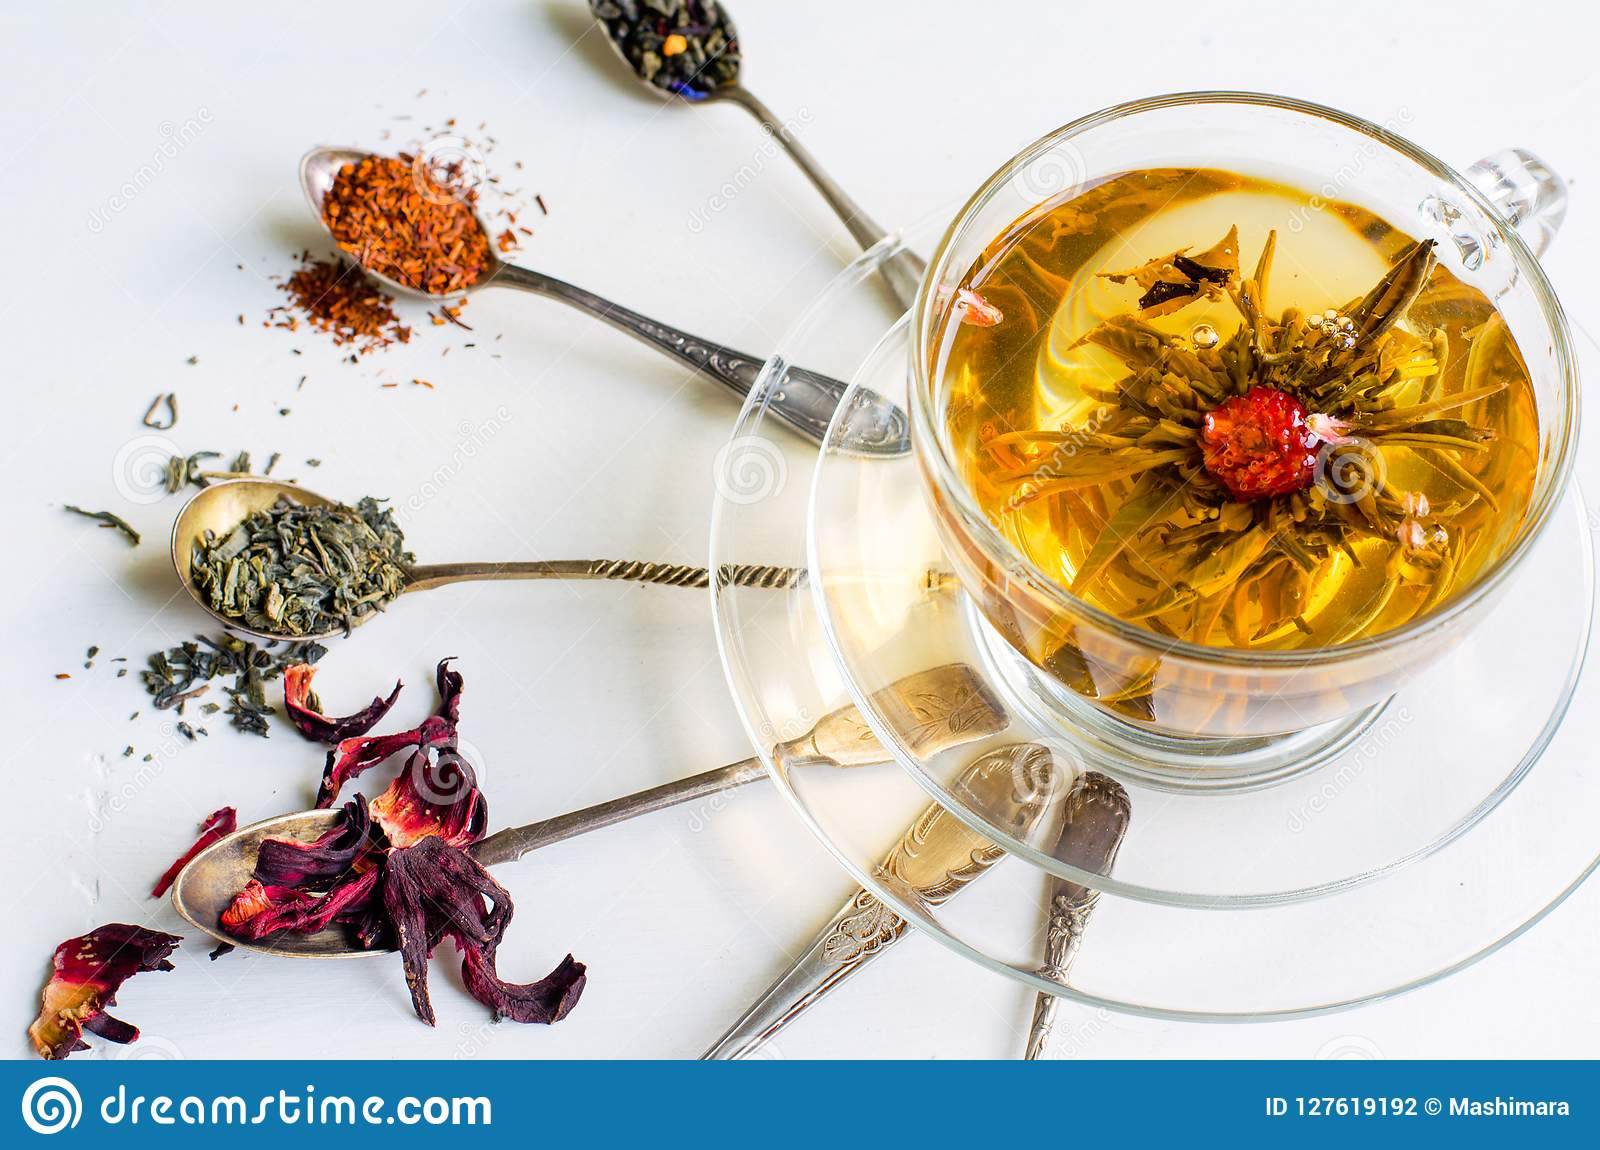 Blooming or flowering tea in a glass cup and spoons with various kinds of tea on white background